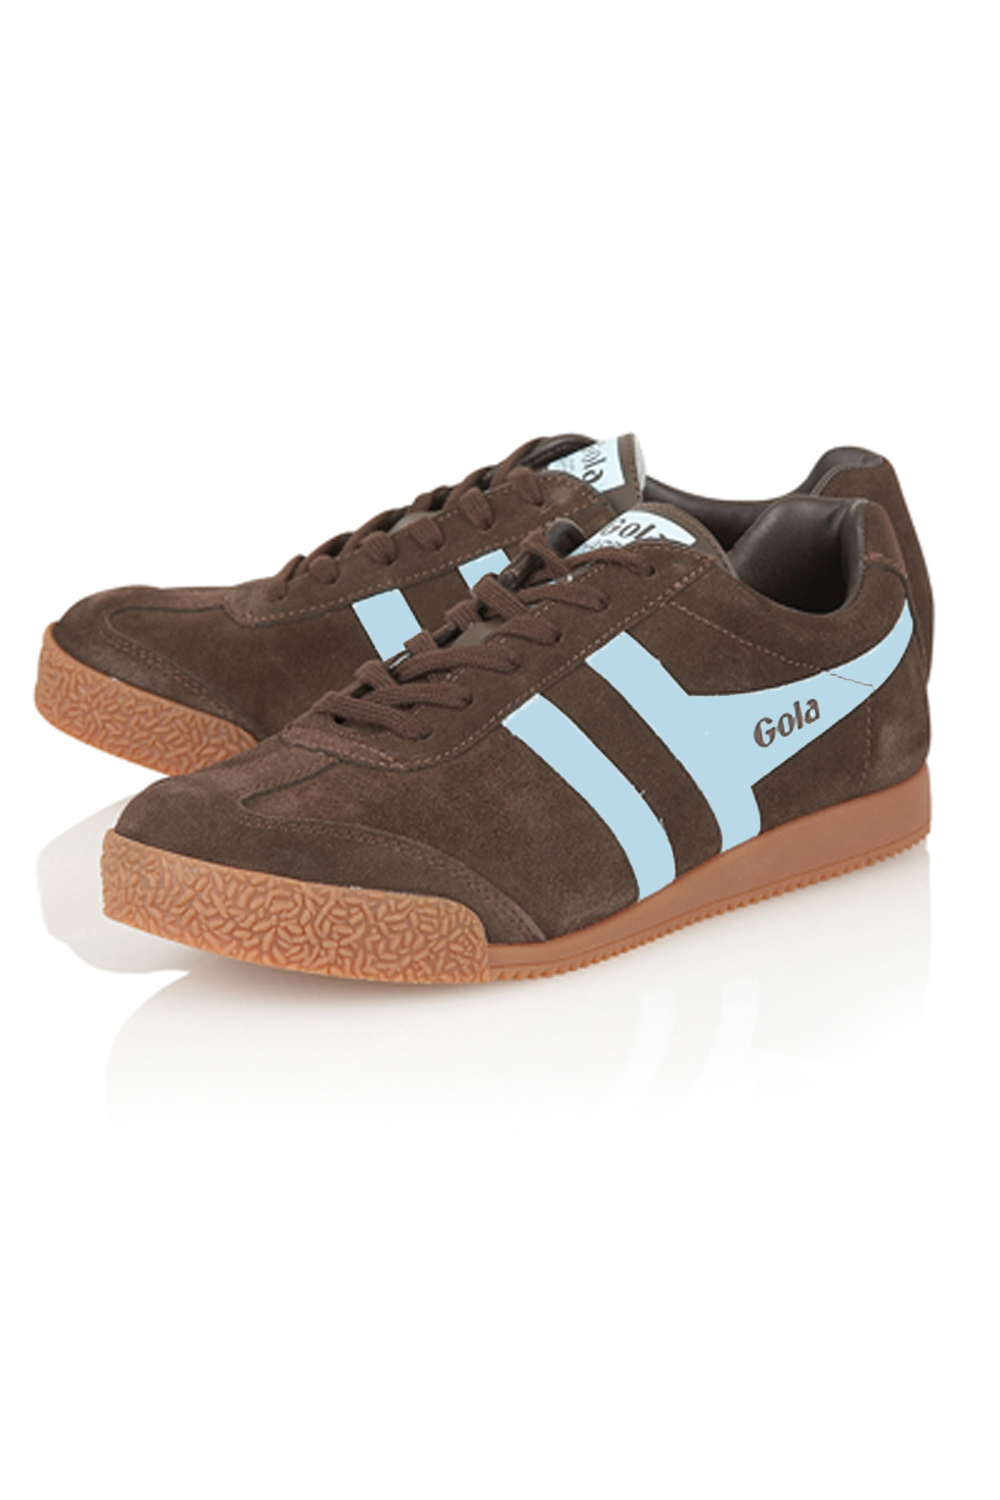 thumbnail 17 - Gola Harrier Suede Classic Vintage Lace-Up Sneakers Mens Trainers Low Top Shoes